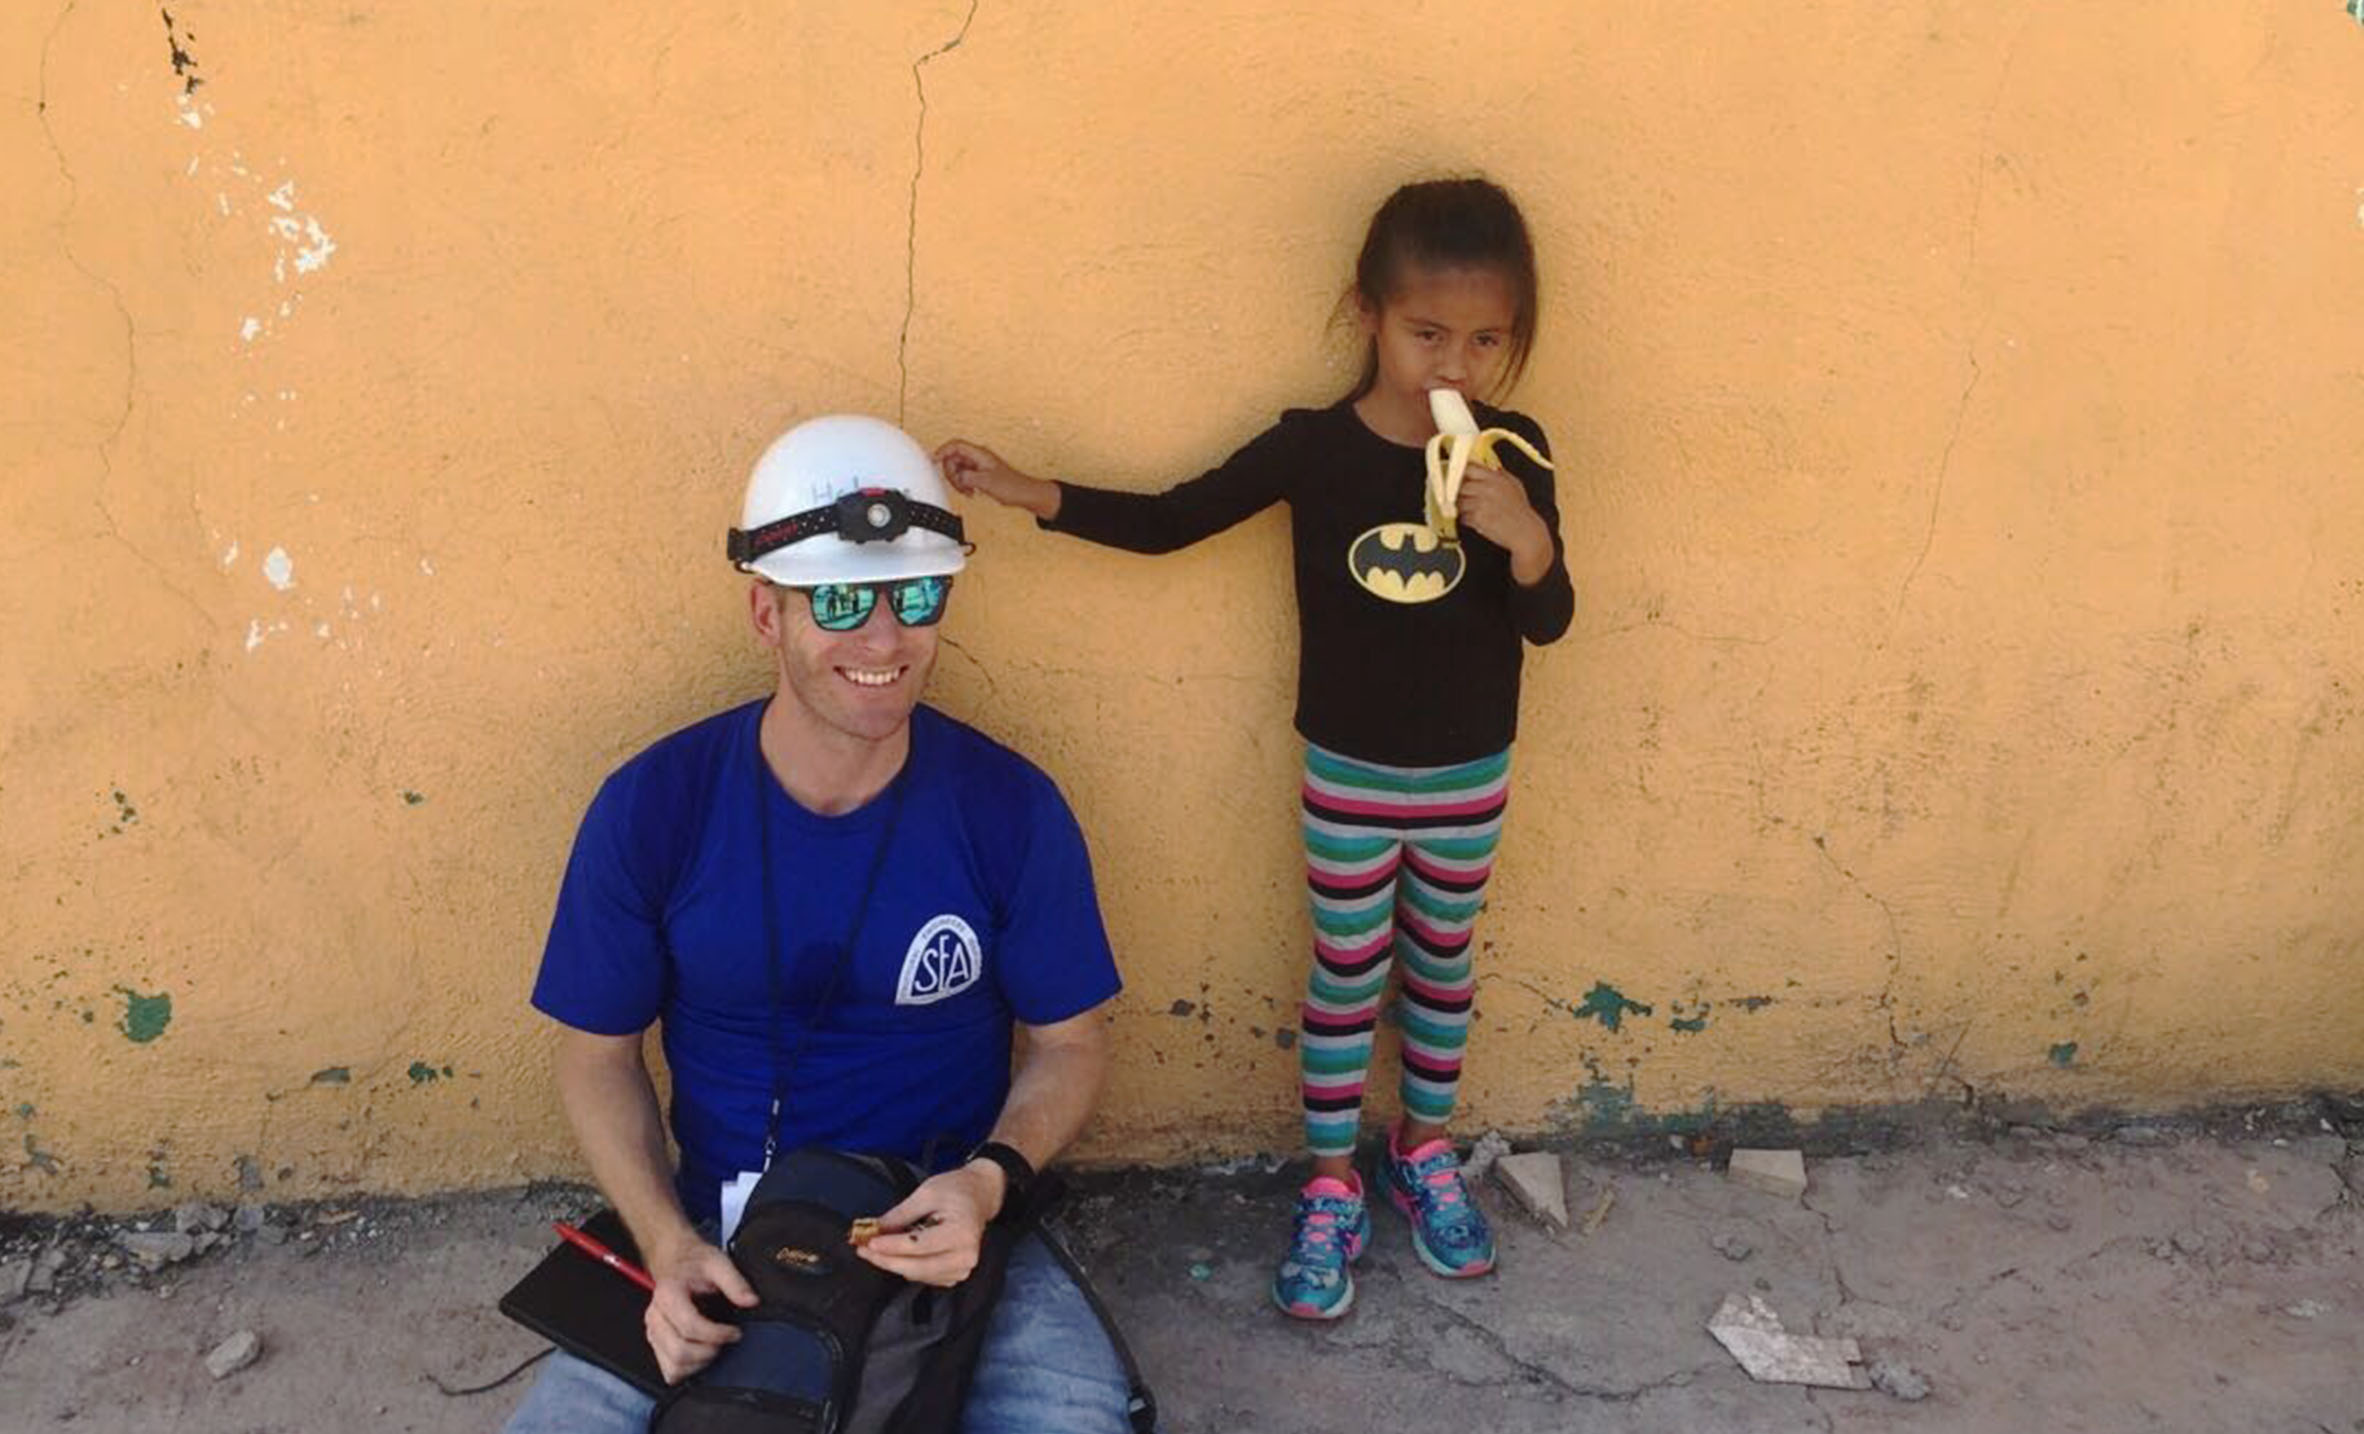 Dion Marriott of Holmes Structures rests in the shade with a young local girl who is wearing a batman shirt eating a banana